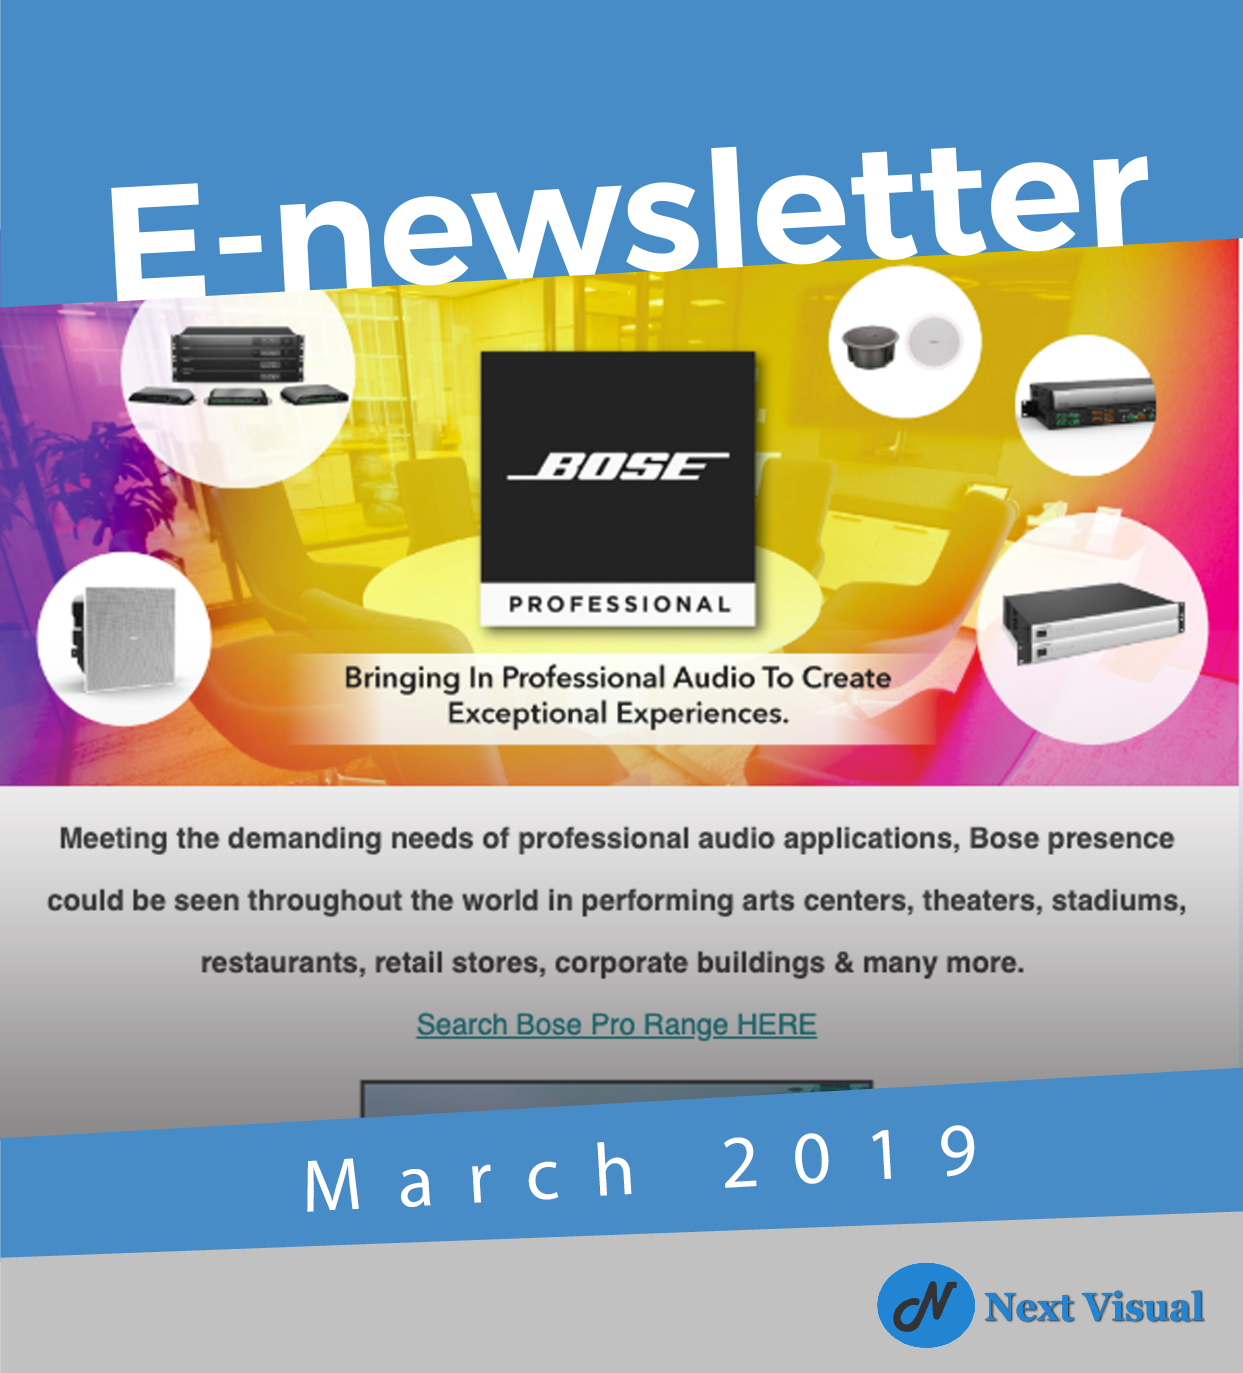 E-Newsletter March 2019